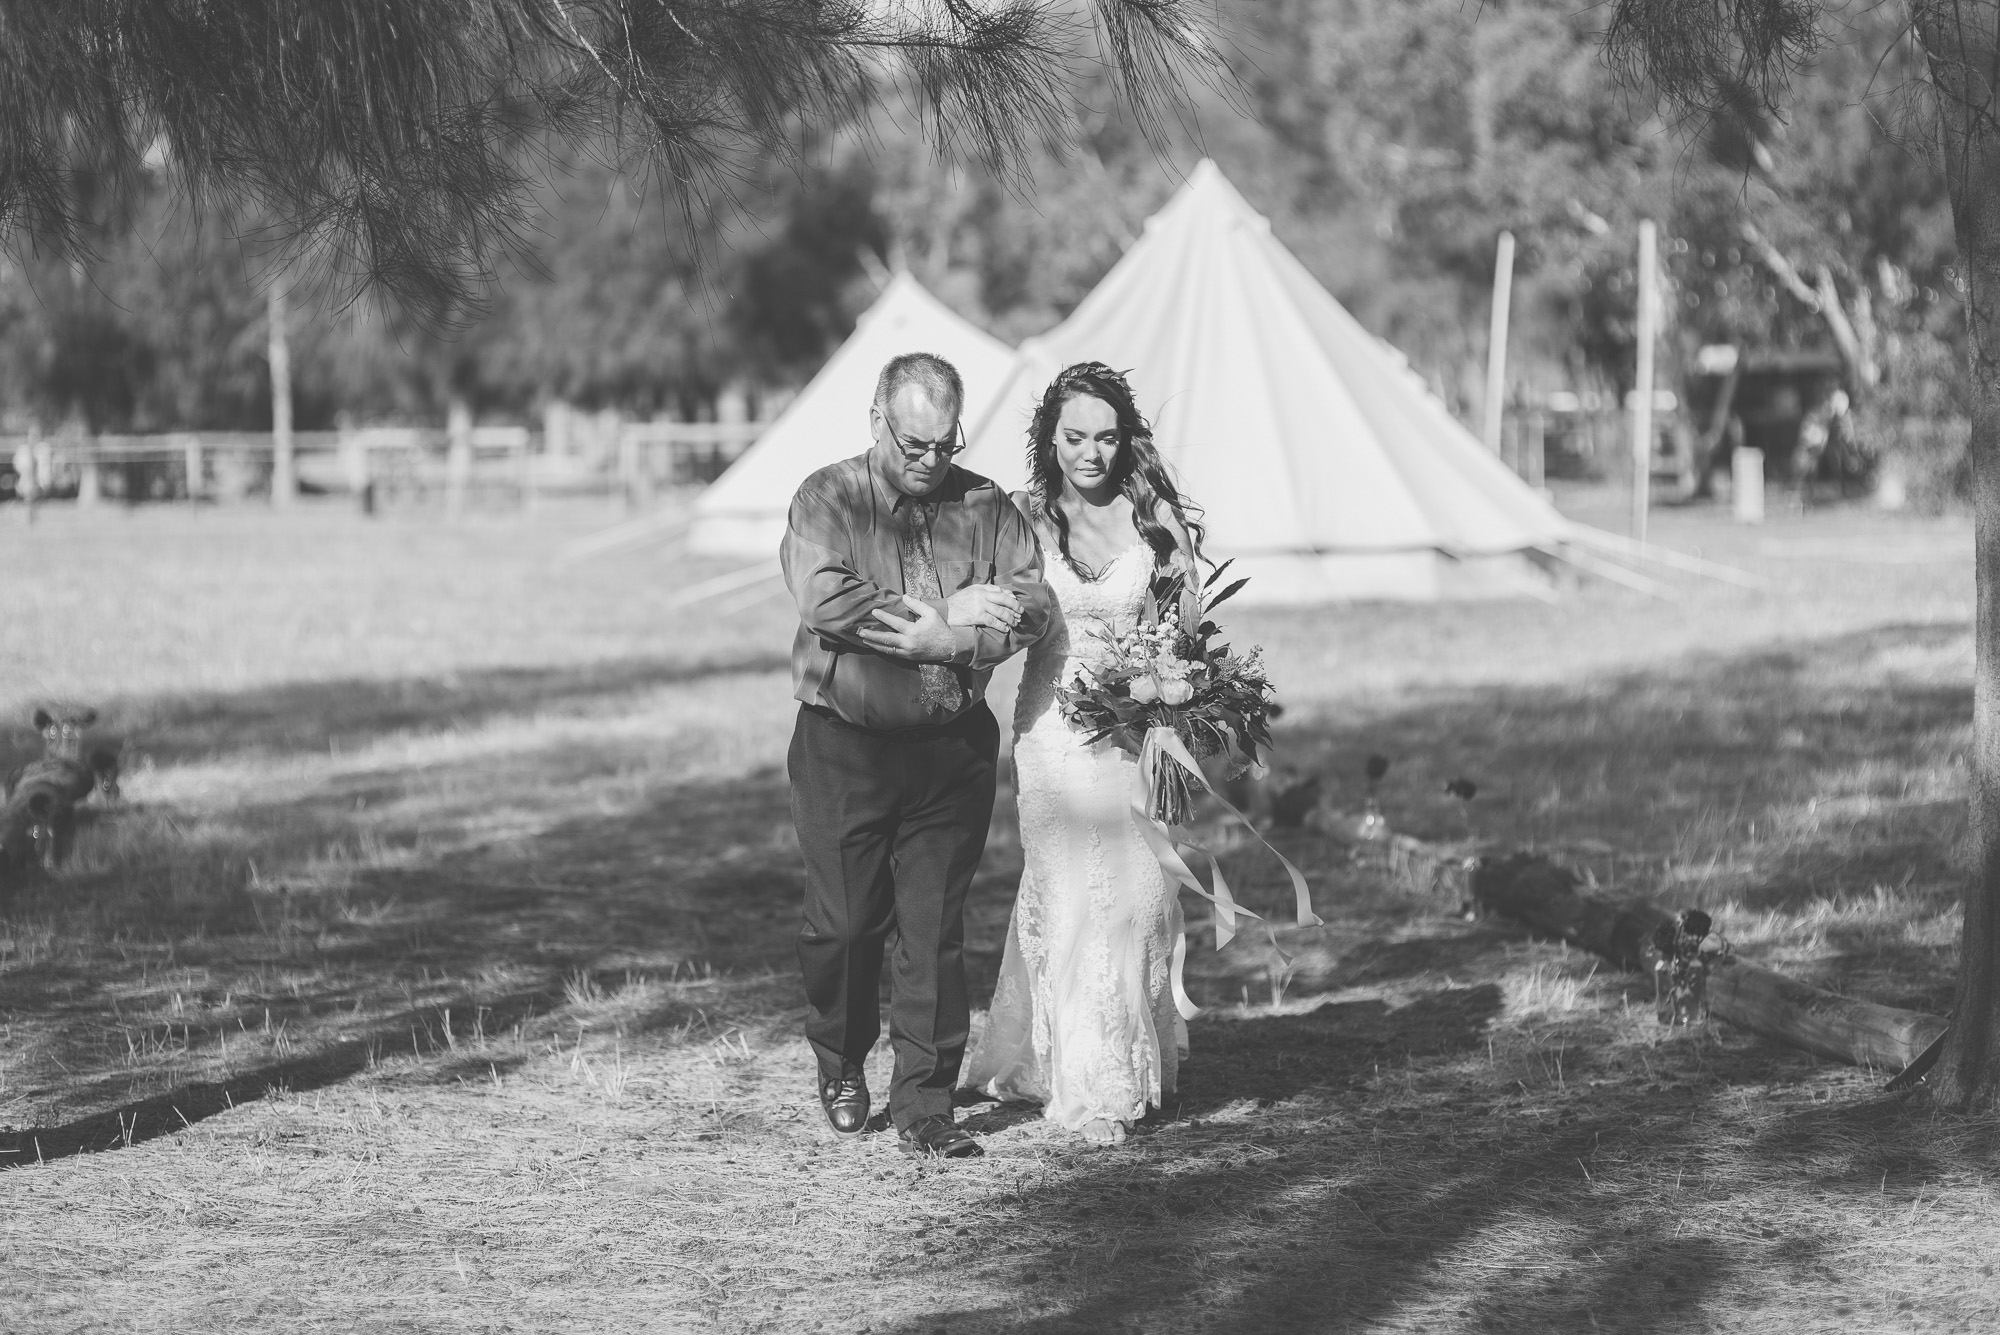 wedding-photographer-outdoor-casual-styled-los-angeles-australia-california-international-earthbound -32.jpg